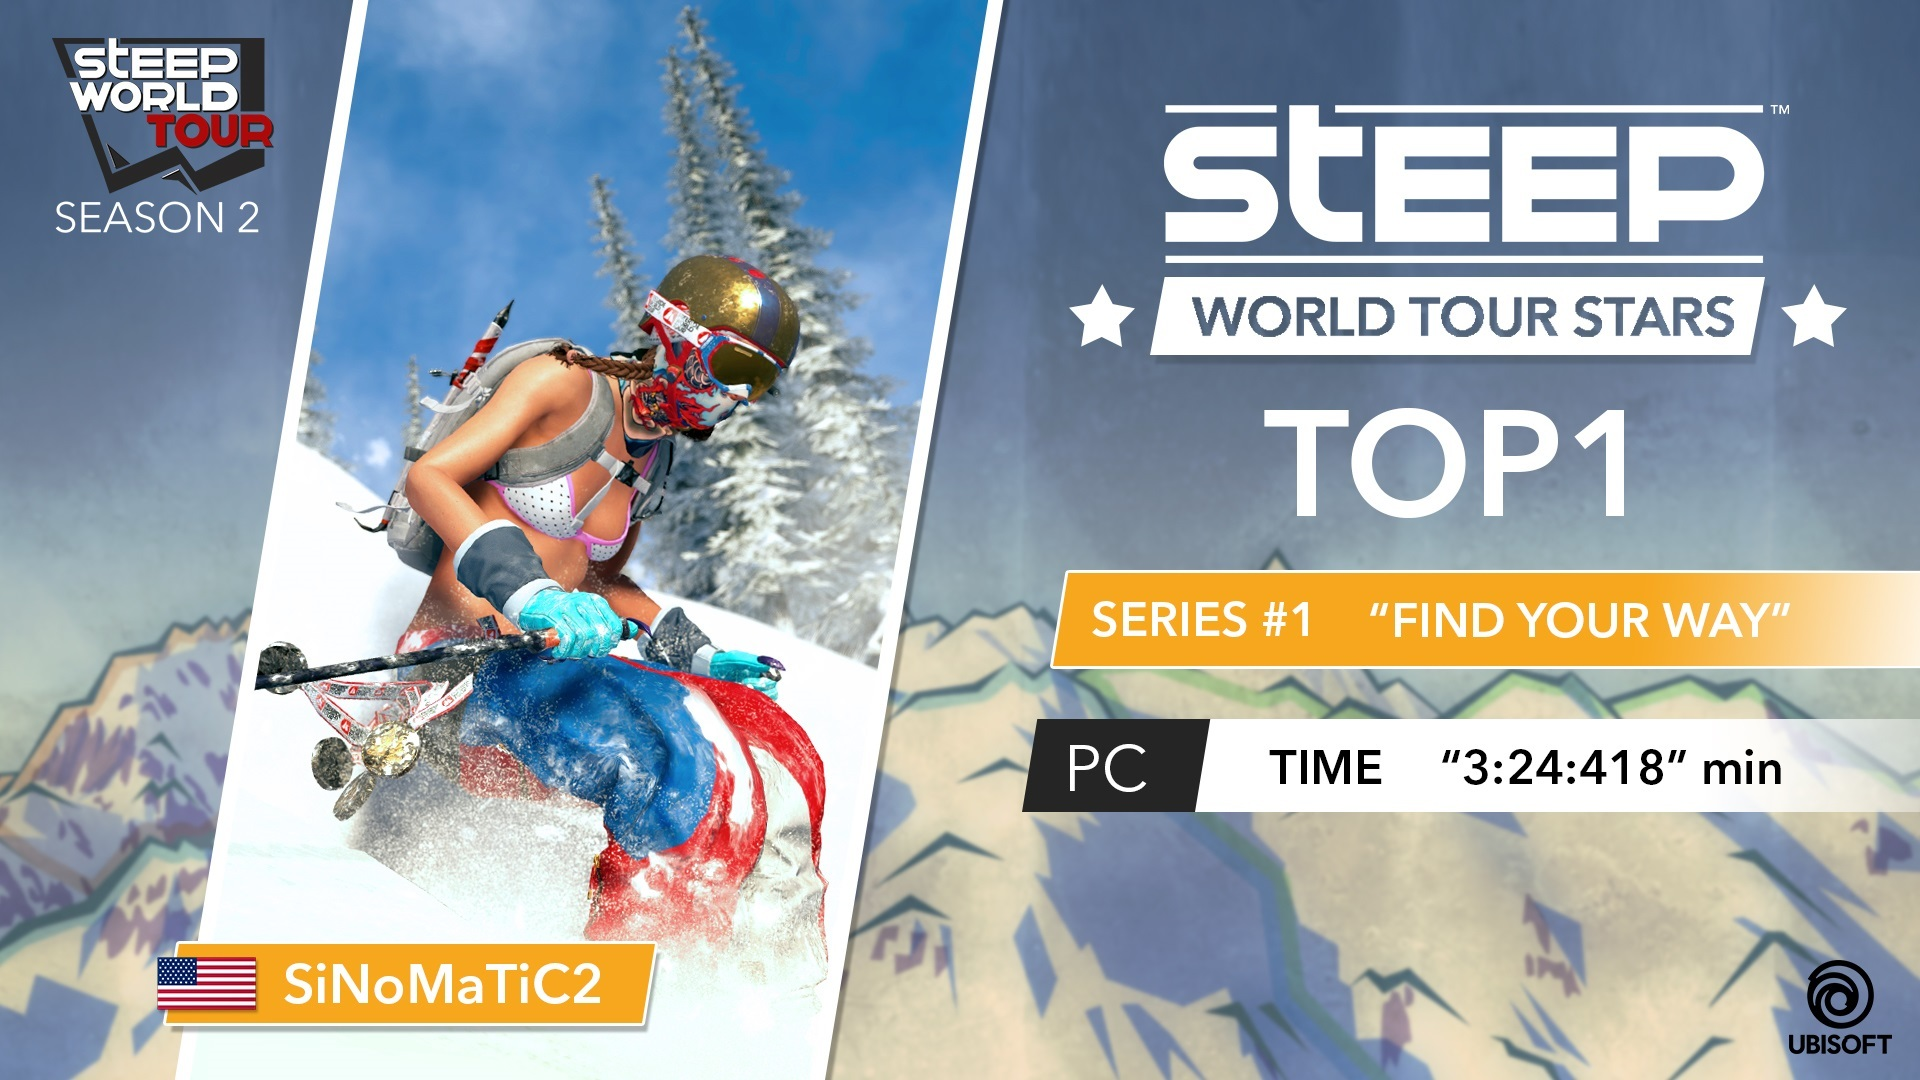 Sep 6 2017 Steep World Tour Own The Sky Winners Game Ps4  Reg 3 Season 2 Series 1 Just Ended Here You Can Find A Few Words From Pc Rider Who Won It